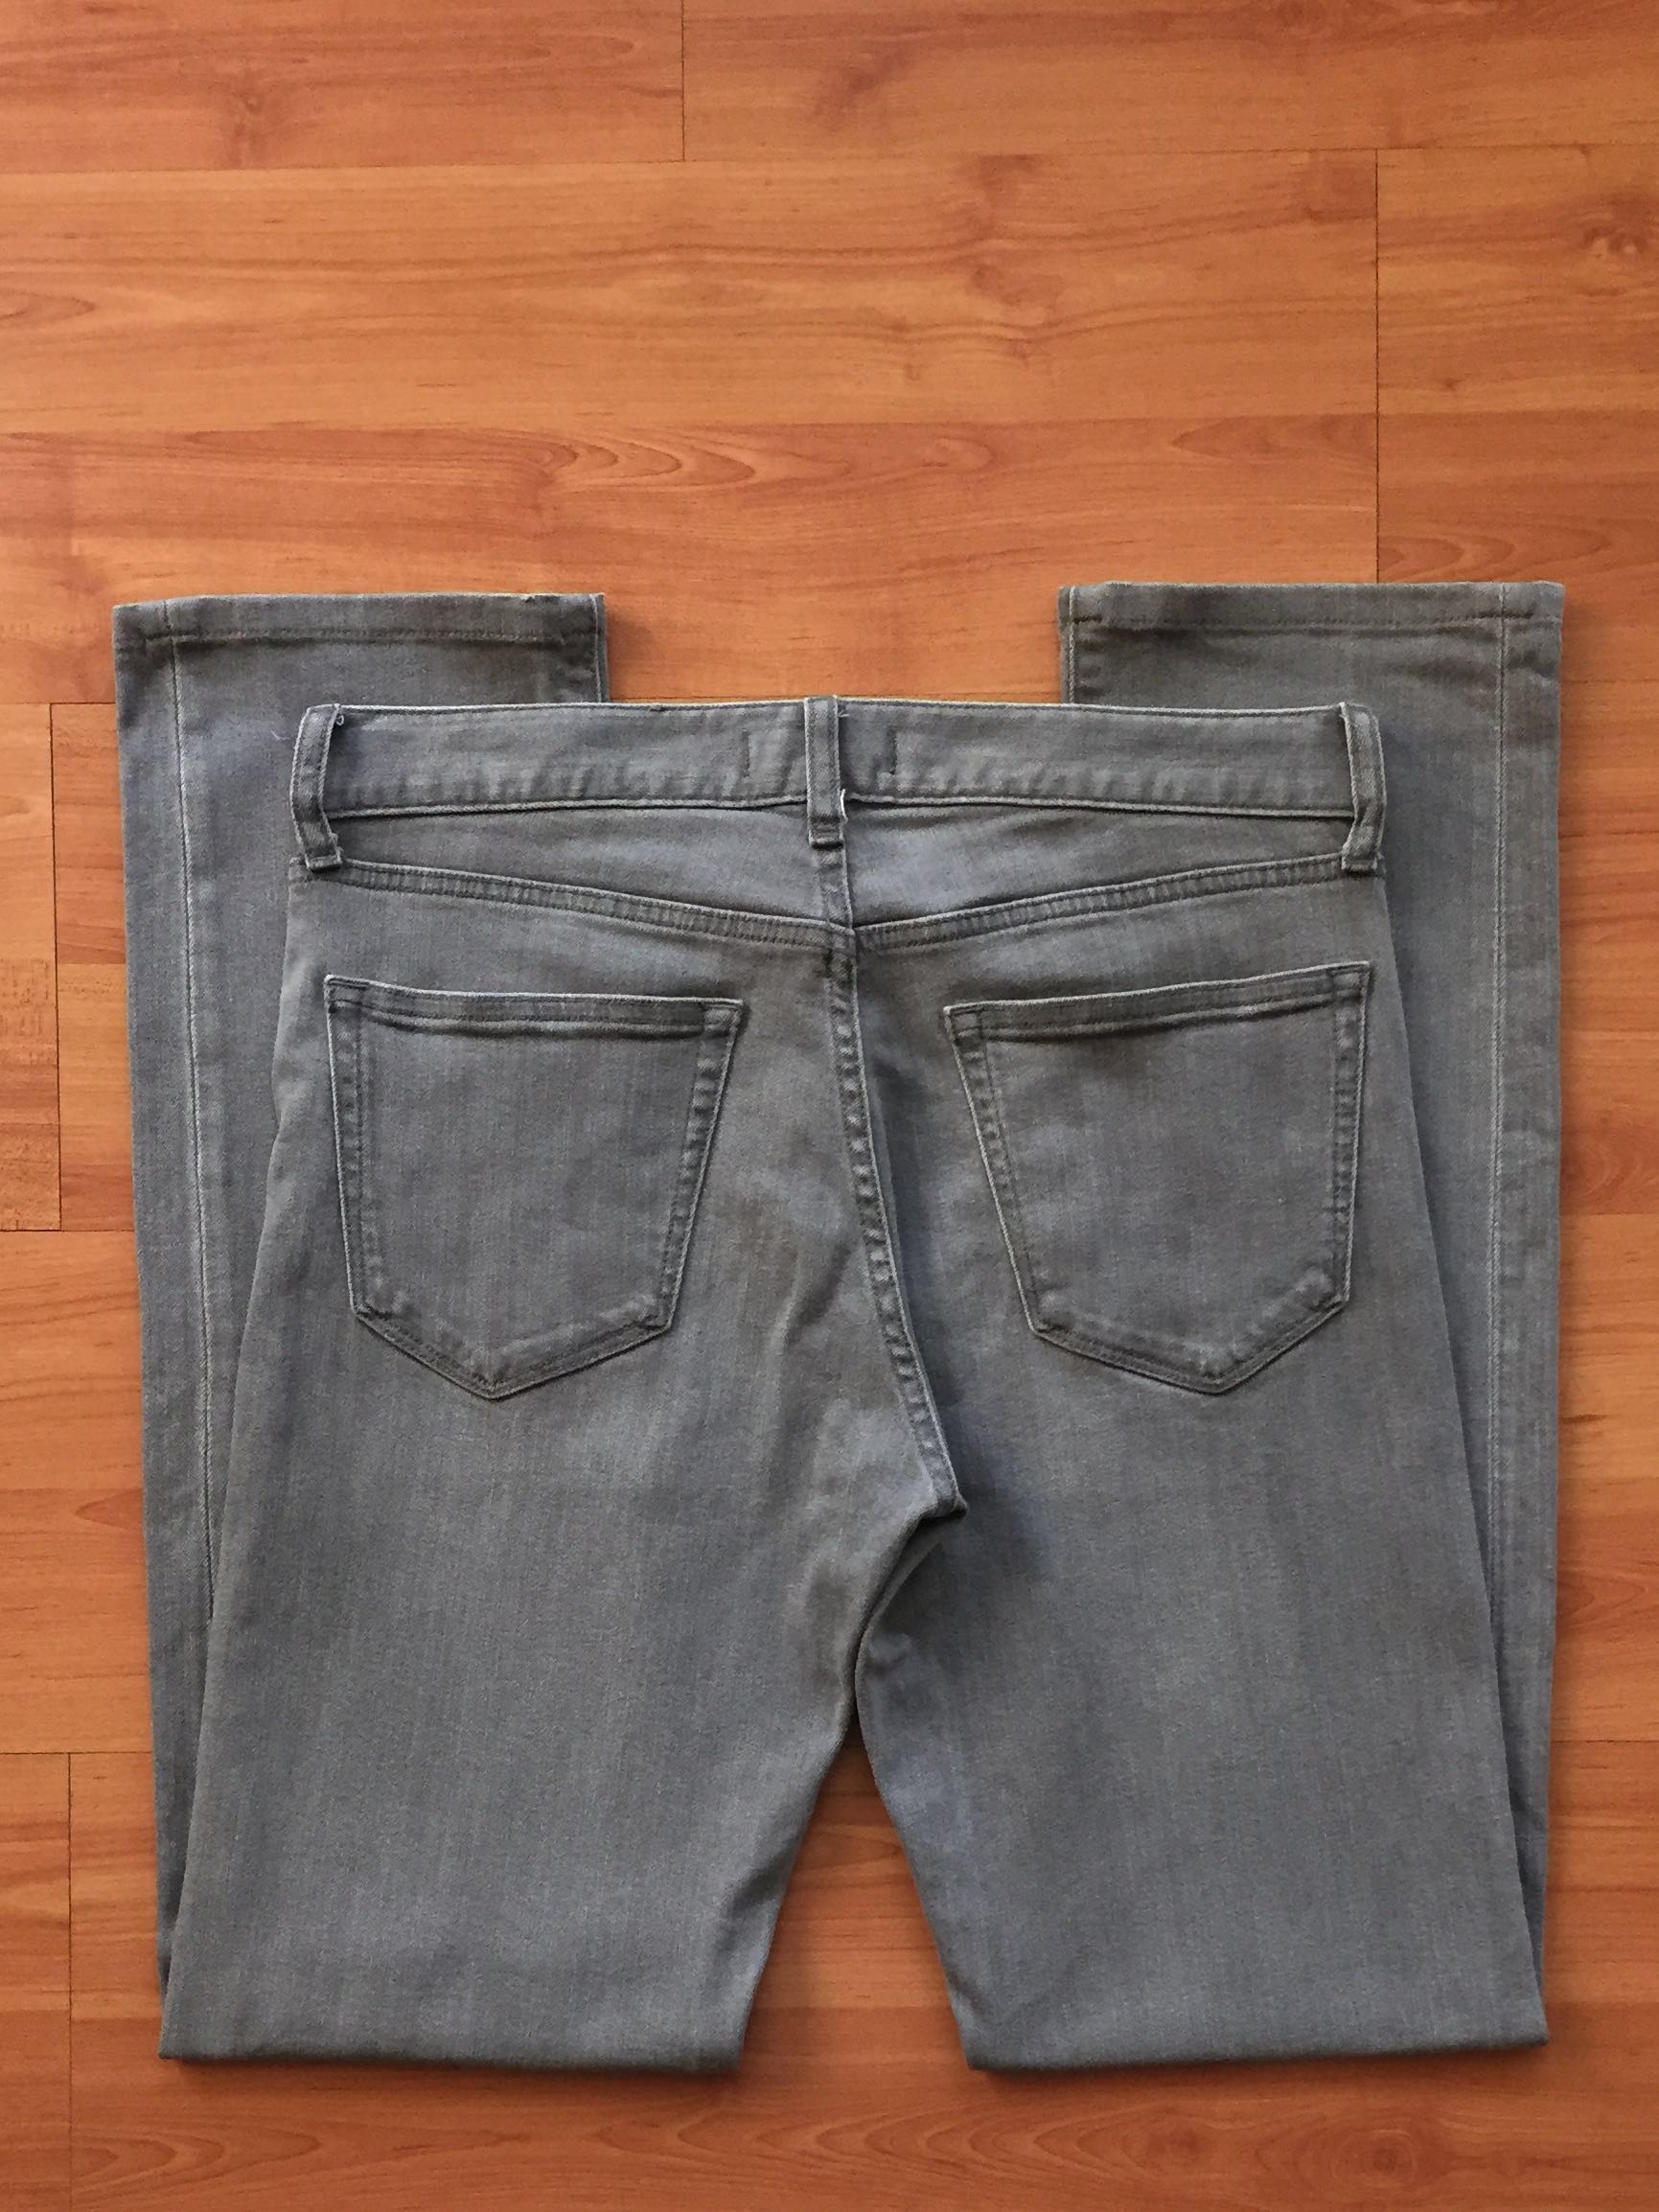 a4fa89d1 UNIQLO SLIM FIT STRAIGHT JEANS PANTS SELUAR, Men's Fashion, Clothes on  Carousell